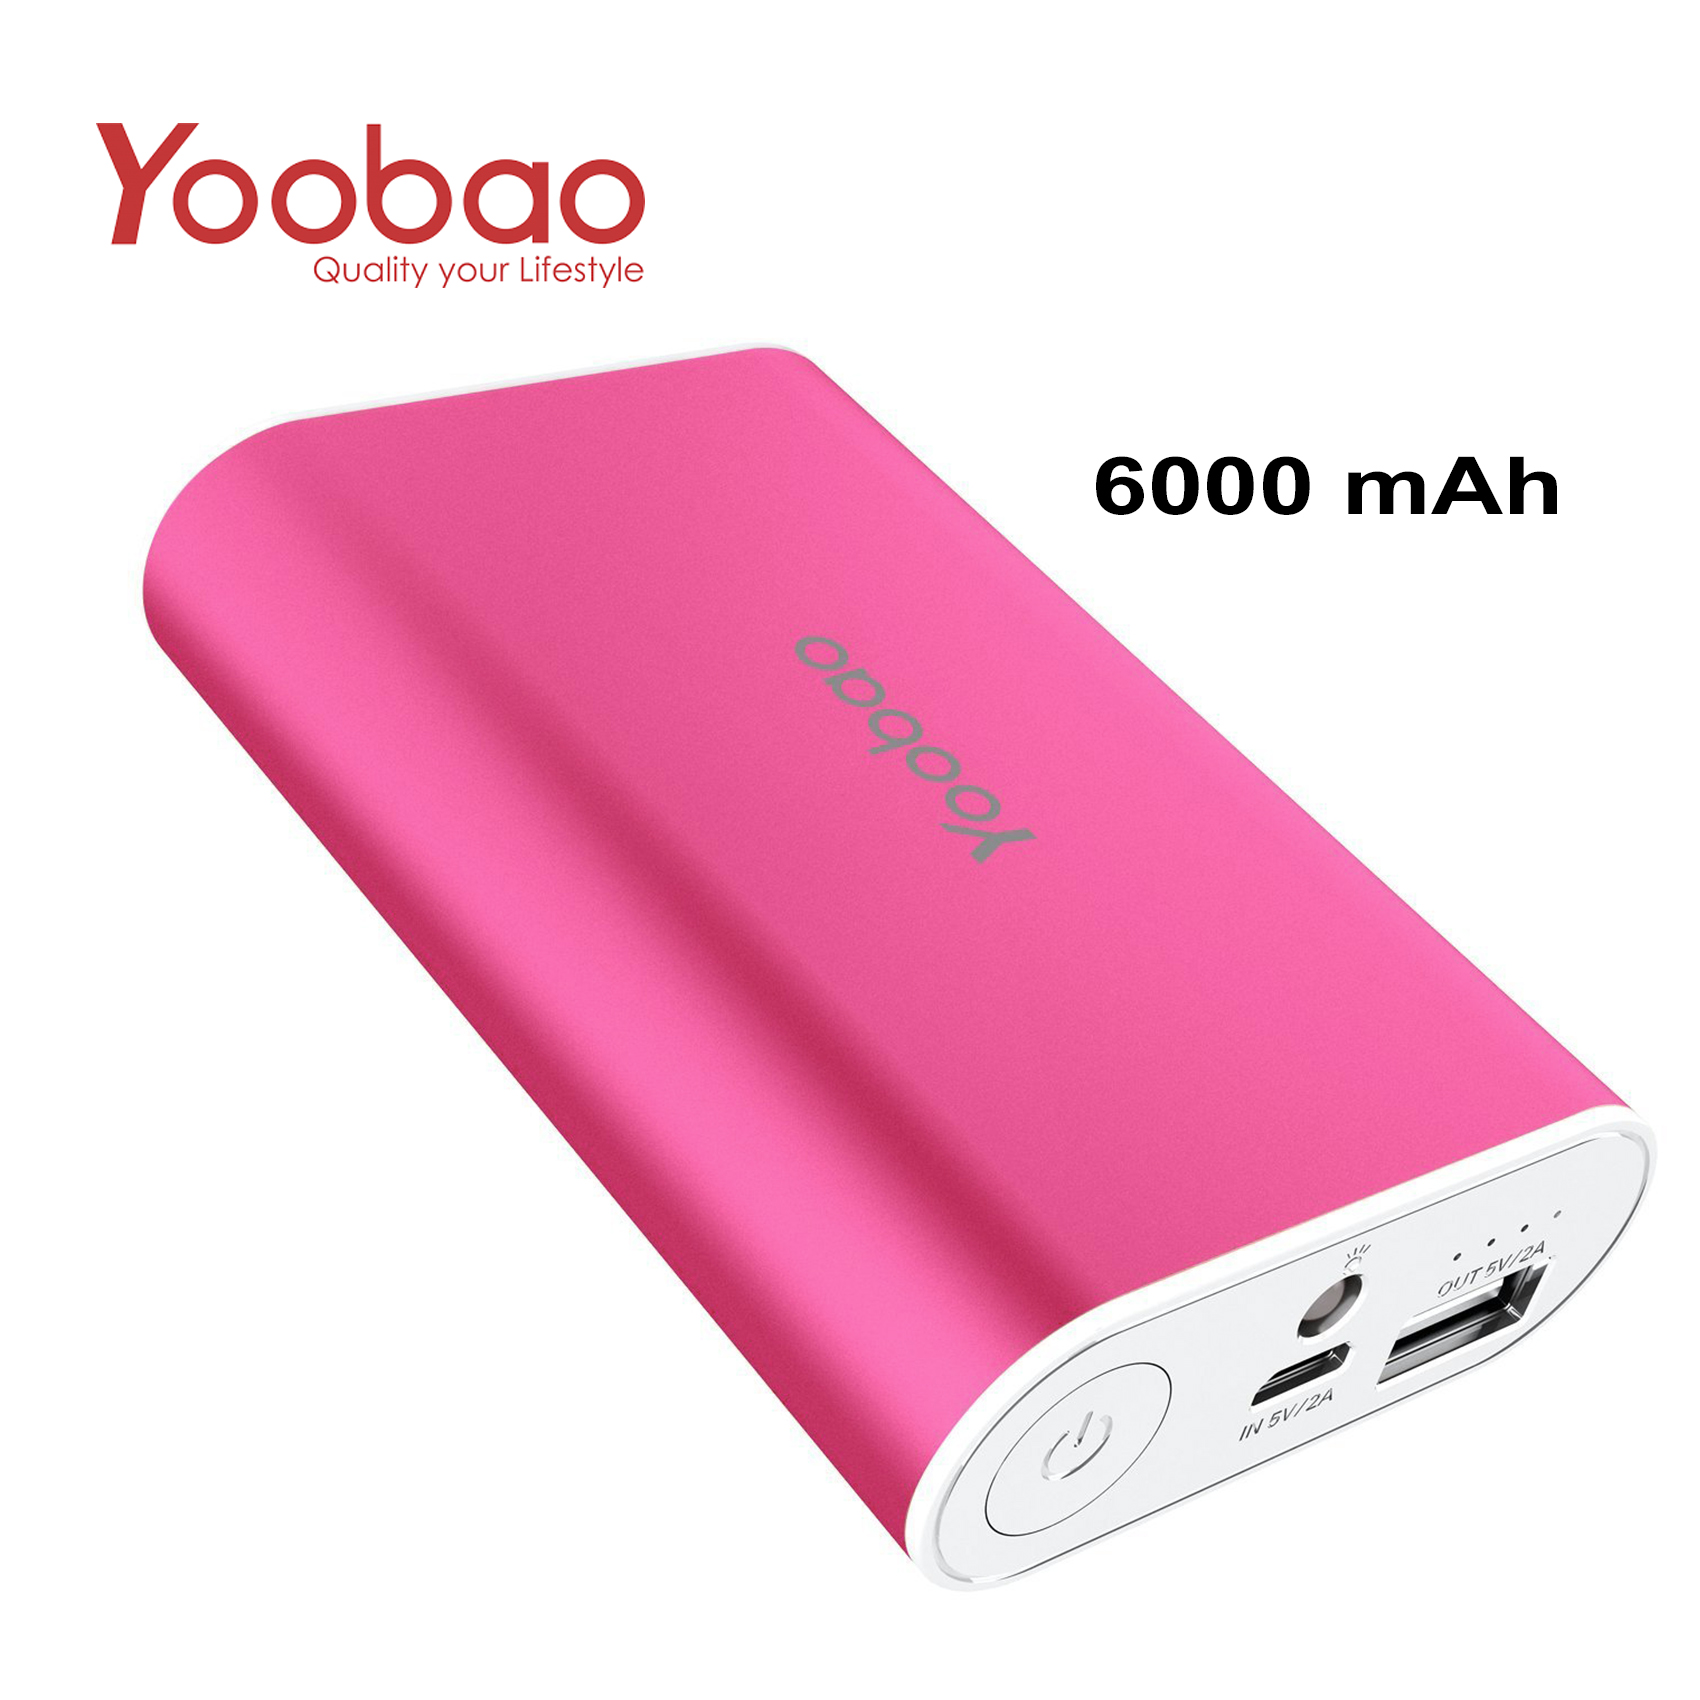 YOOBAO Intelligent Power Bank S3 6000mAh Portable Charger - Pink